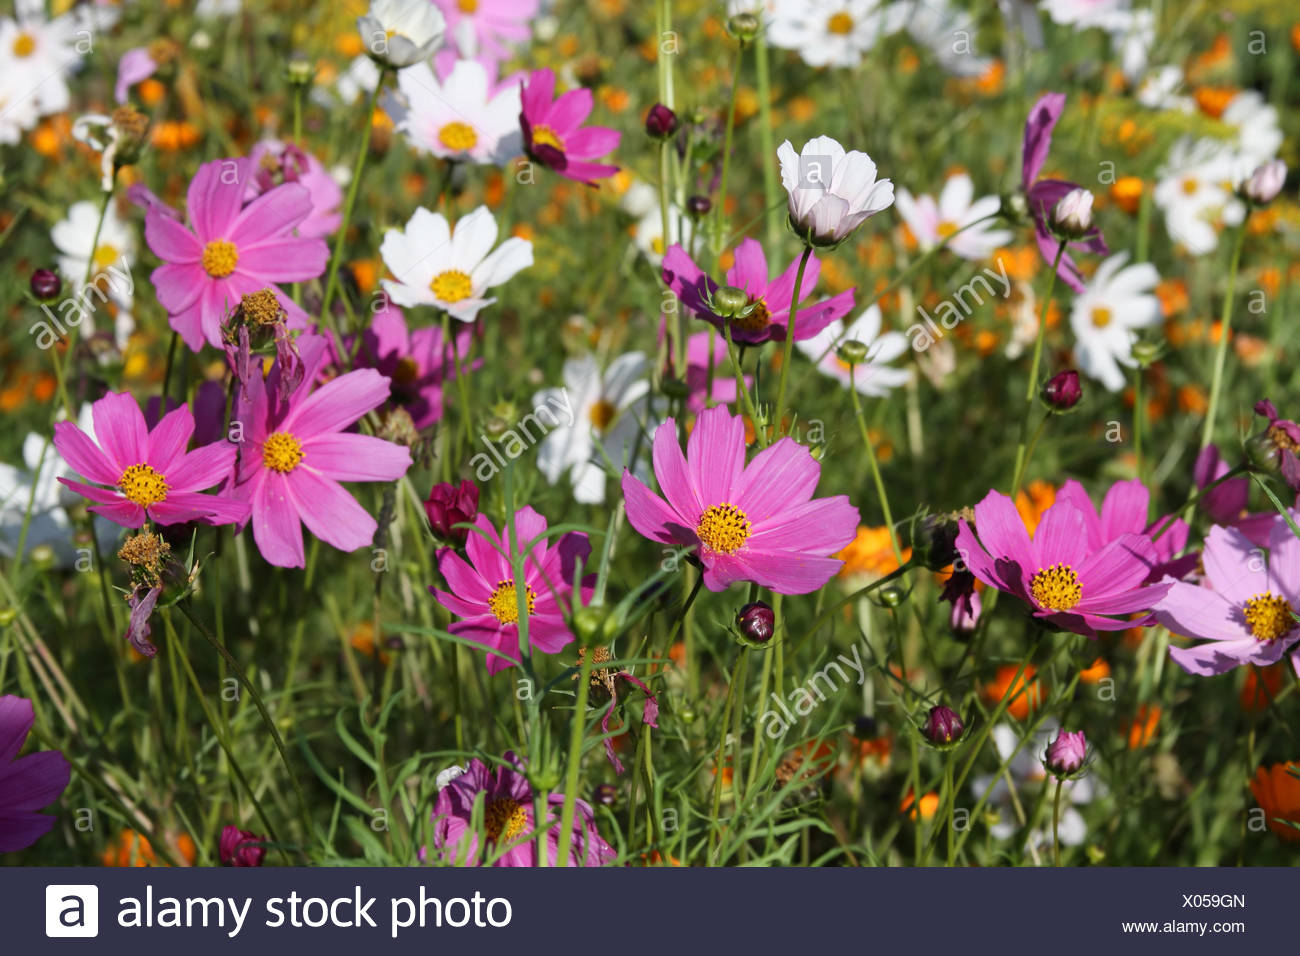 Pink and white cosmos flowers in a garden stock photo 275483173 alamy pink and white cosmos flowers in a garden mightylinksfo